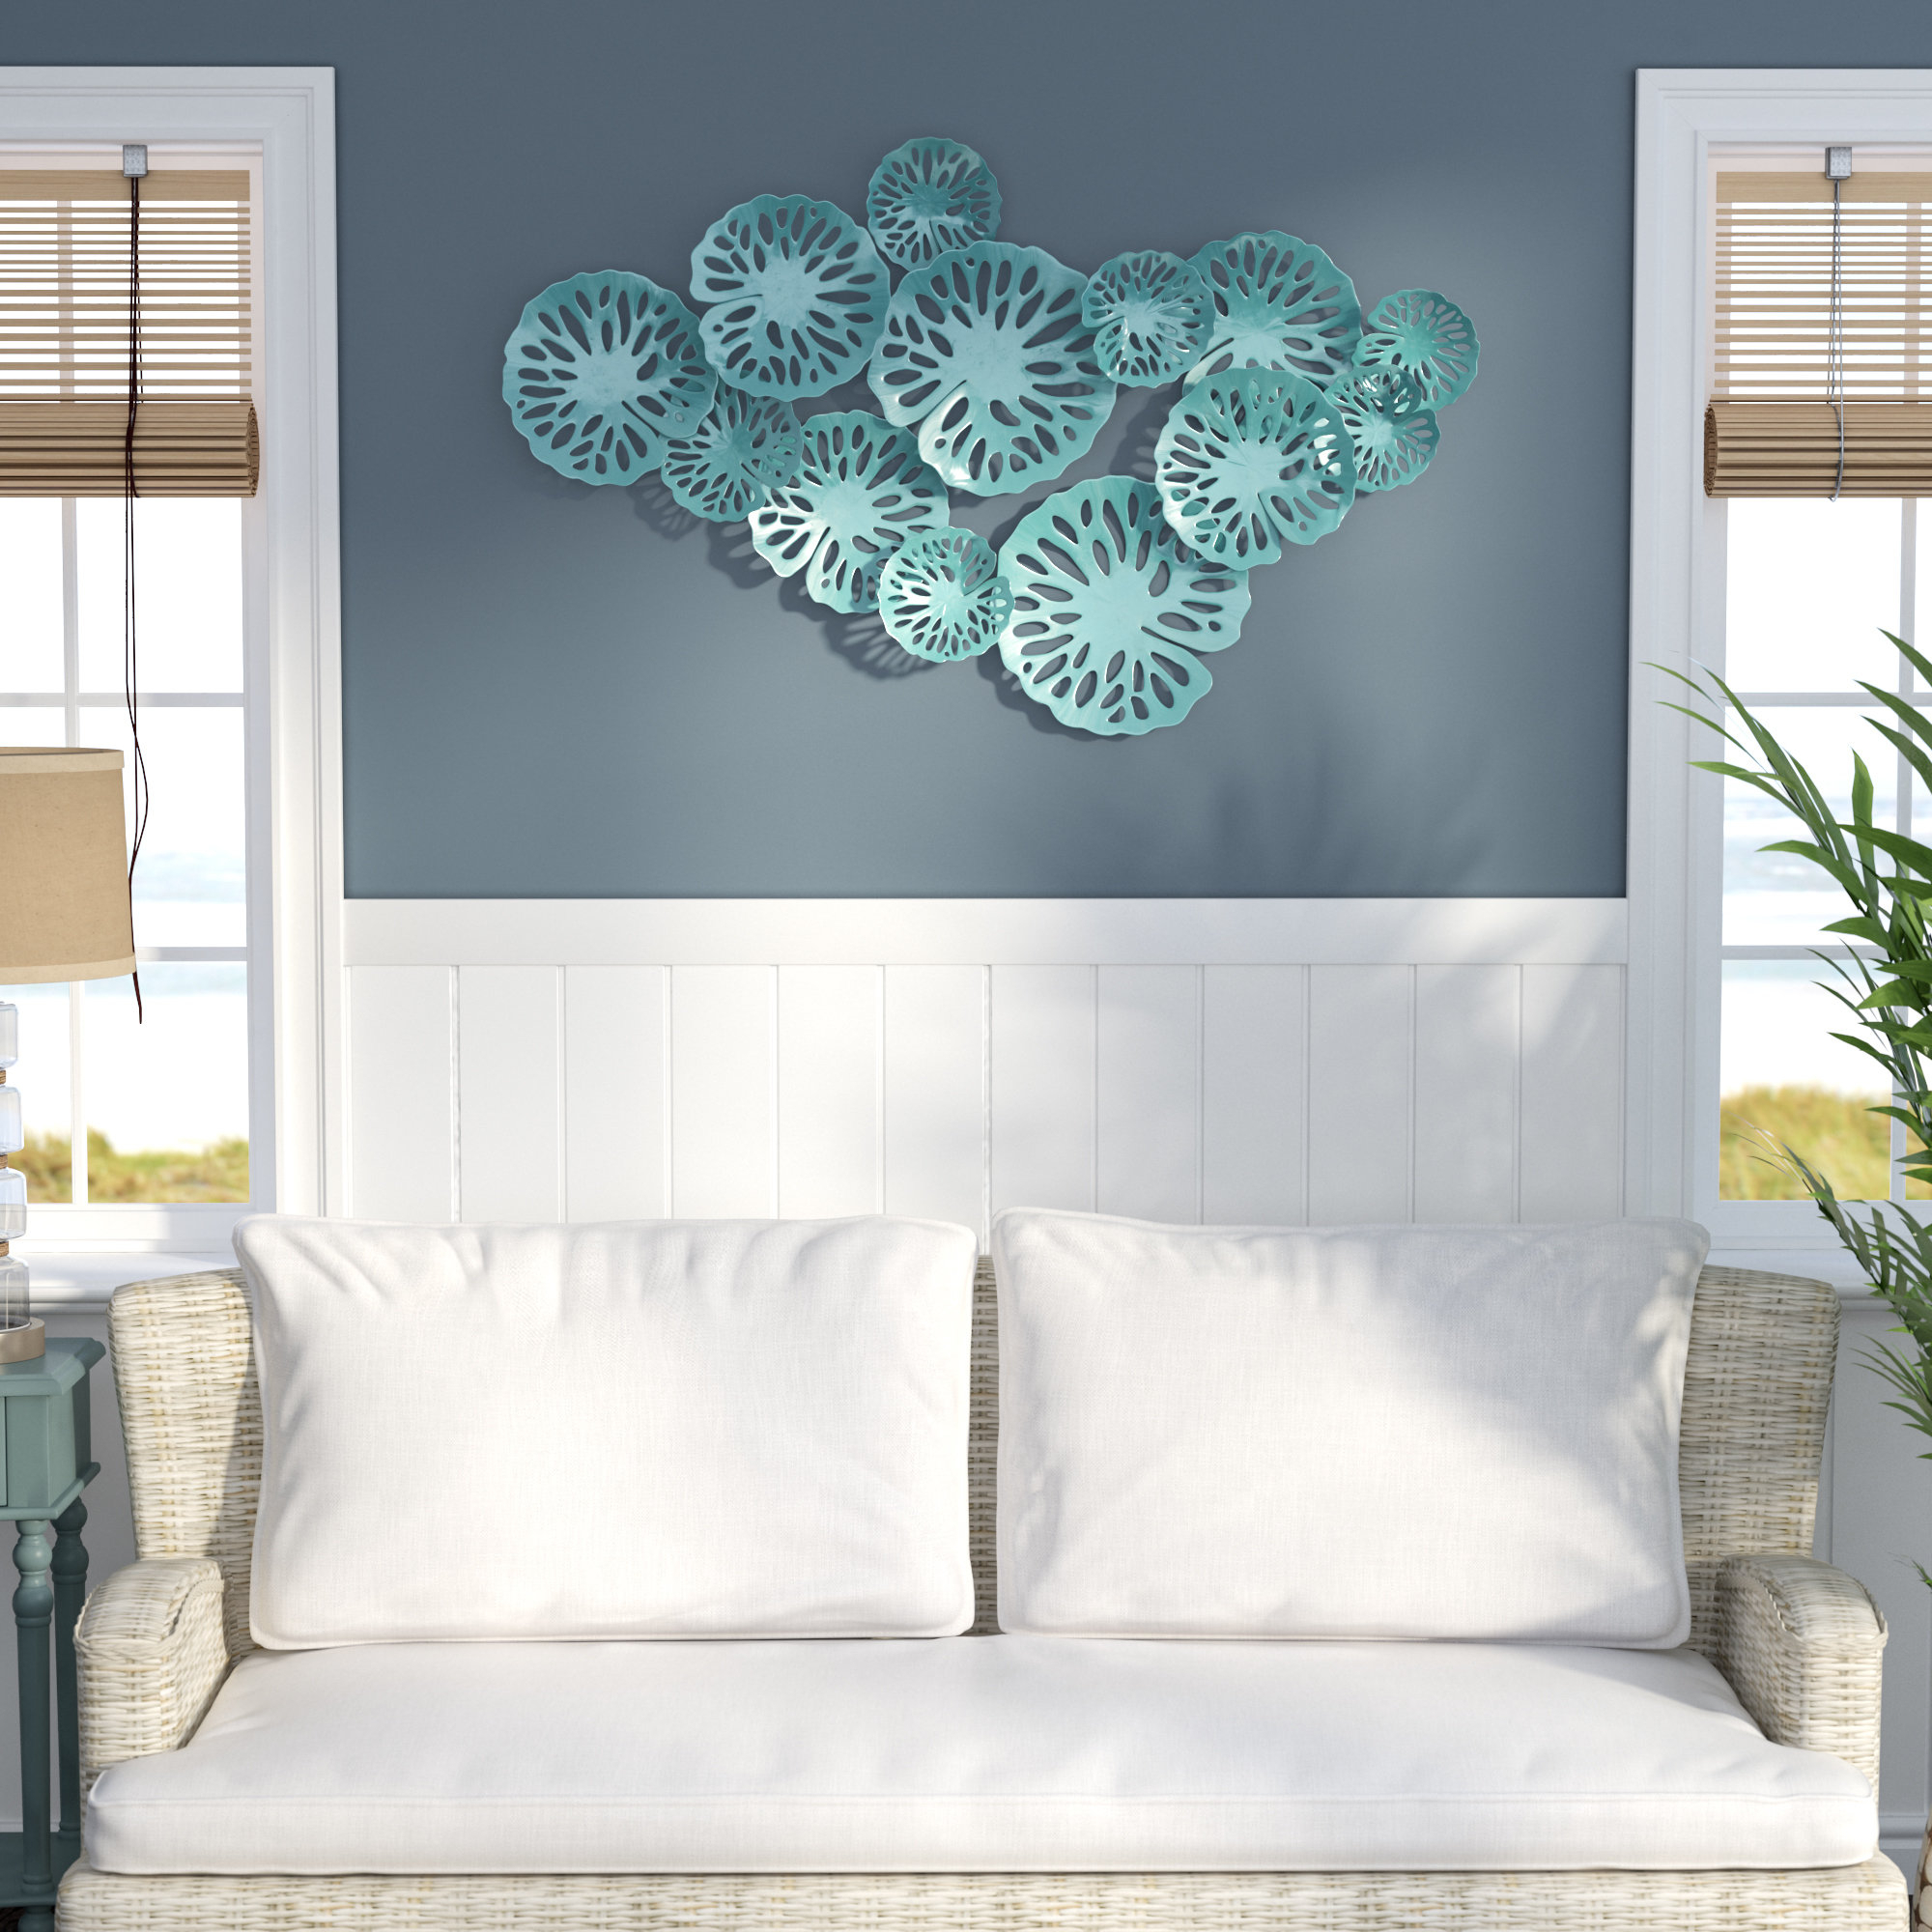 Wayfair Intended For Latest Rhys Turtle Decor Wall Decor (Gallery 20 of 20)